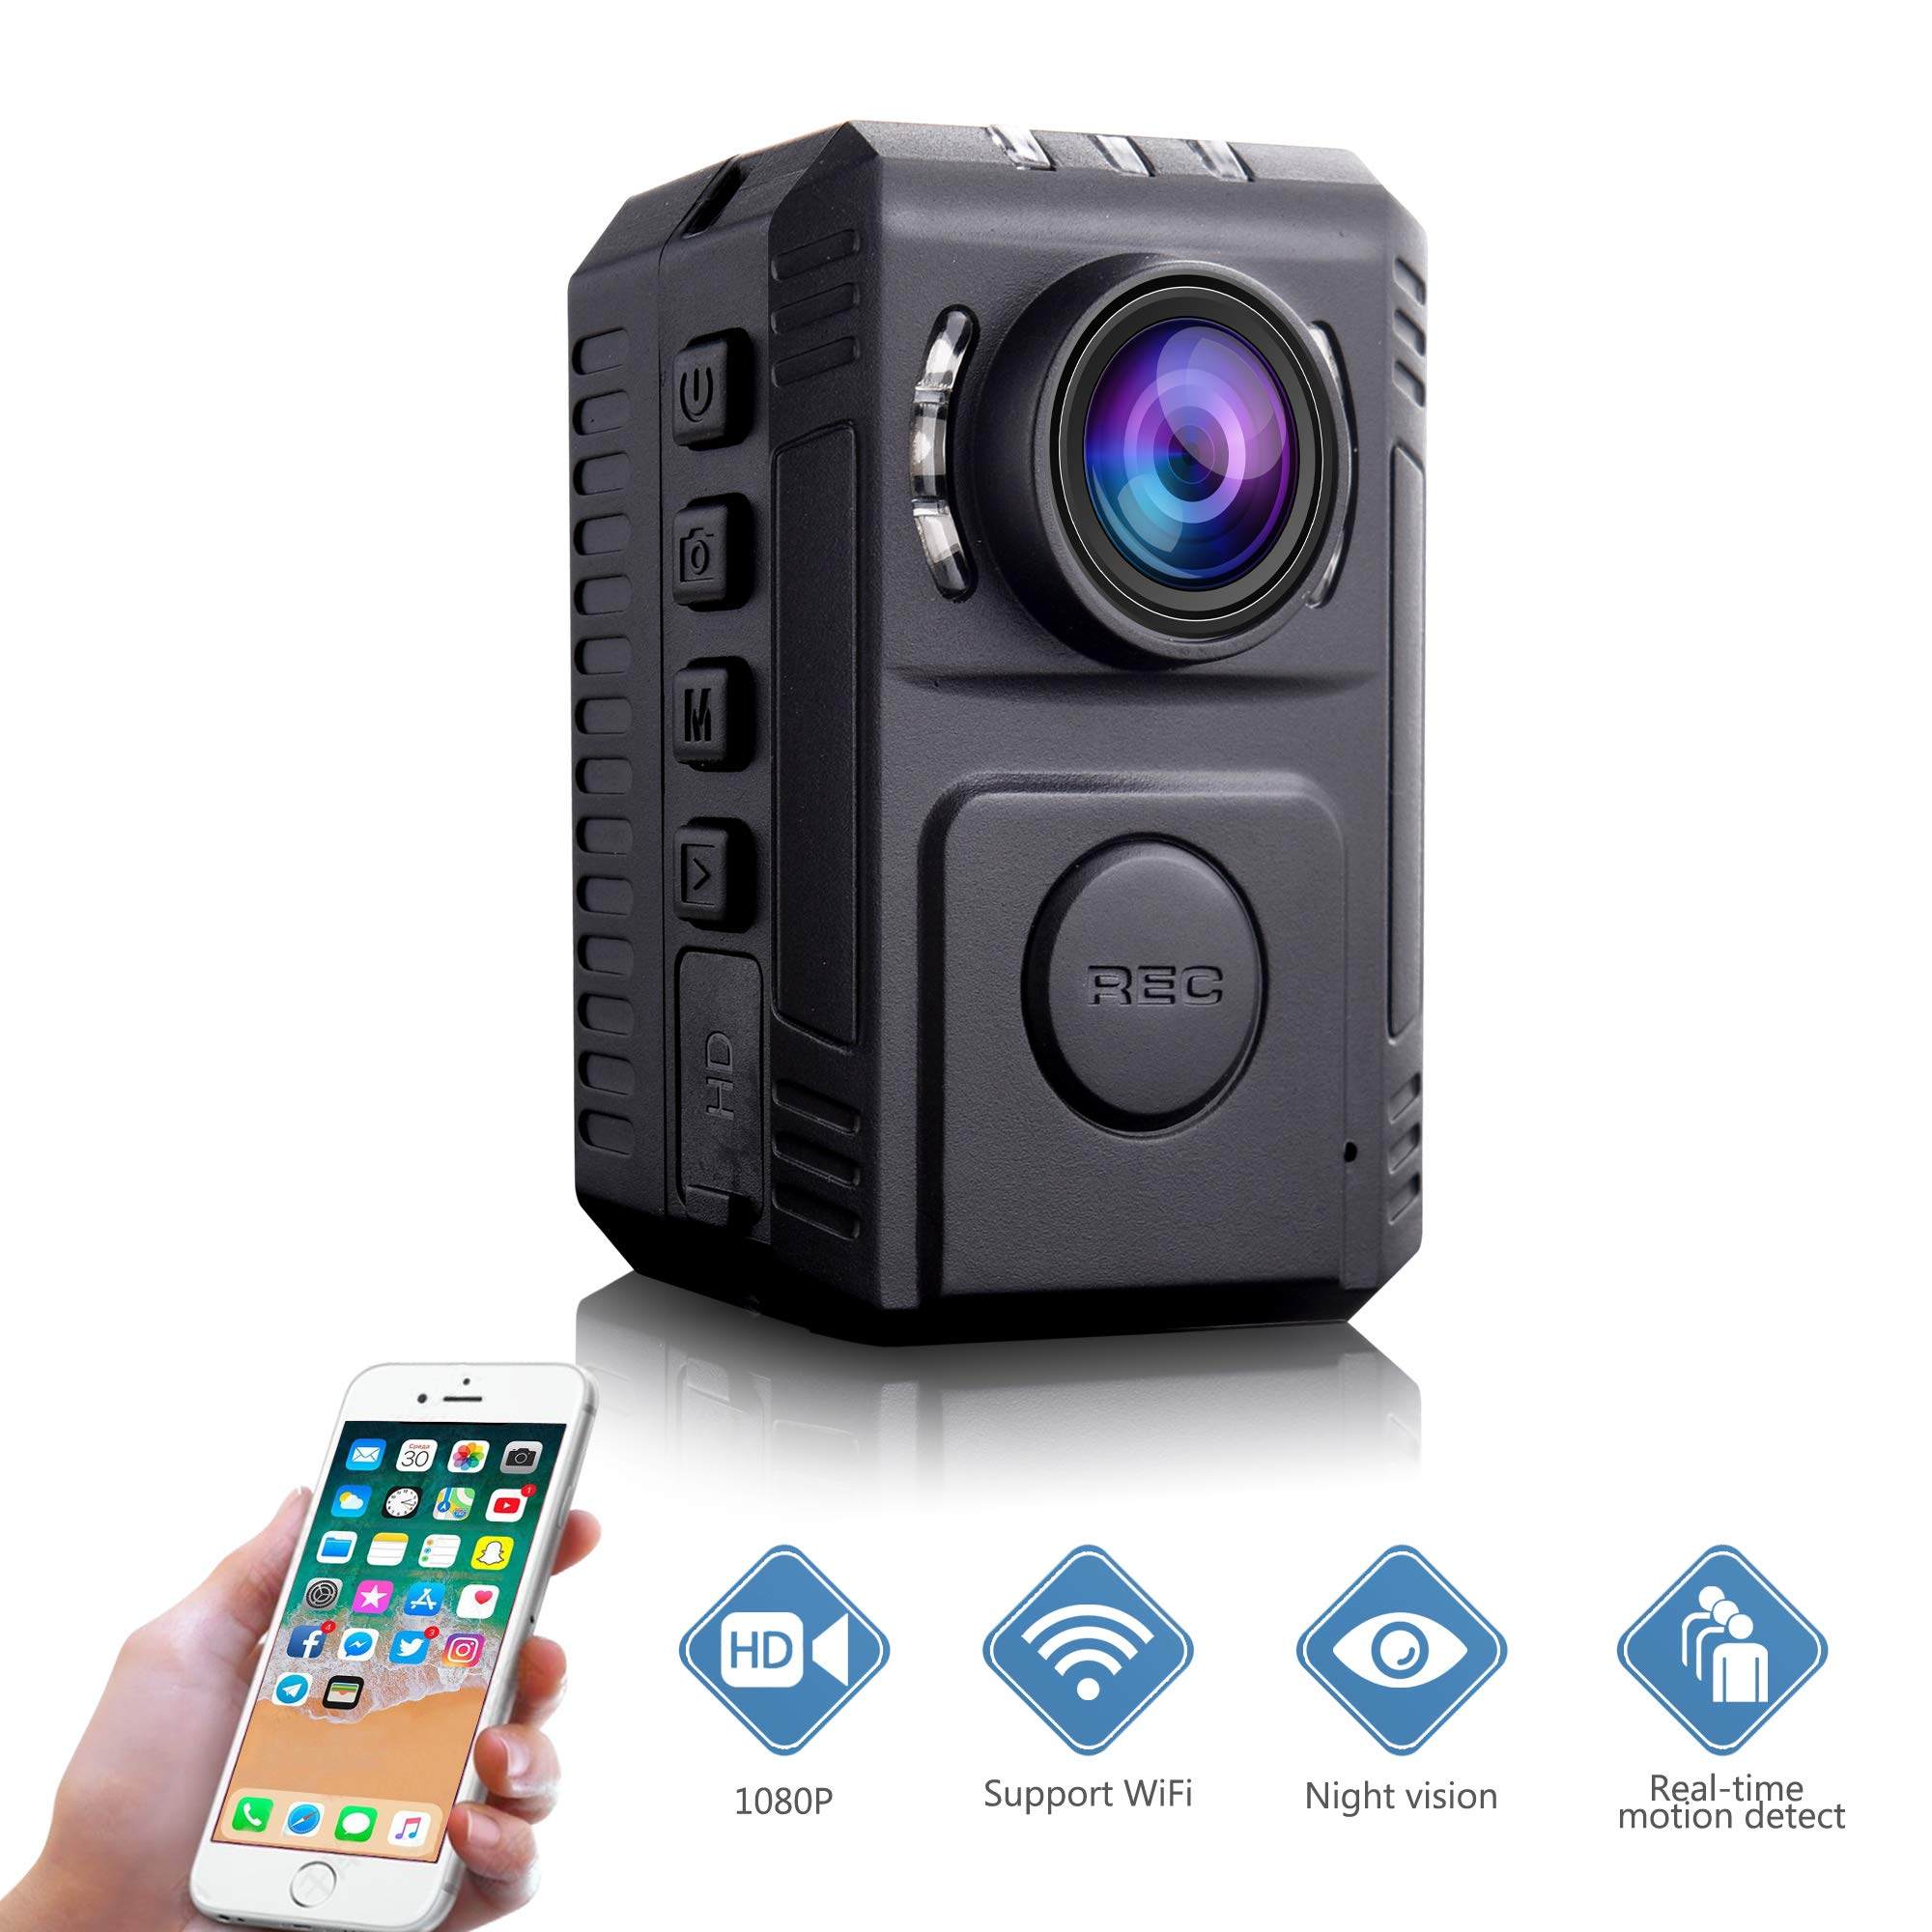 Mini Body Amount Camera - Wireless Person Wearable Camera, Portable HD Body Worn Camera, Surveillance Night Vision Pocket Camera with Phone App for Outdoor/Indoor - Hiking/Hunting/Camping/Marathon